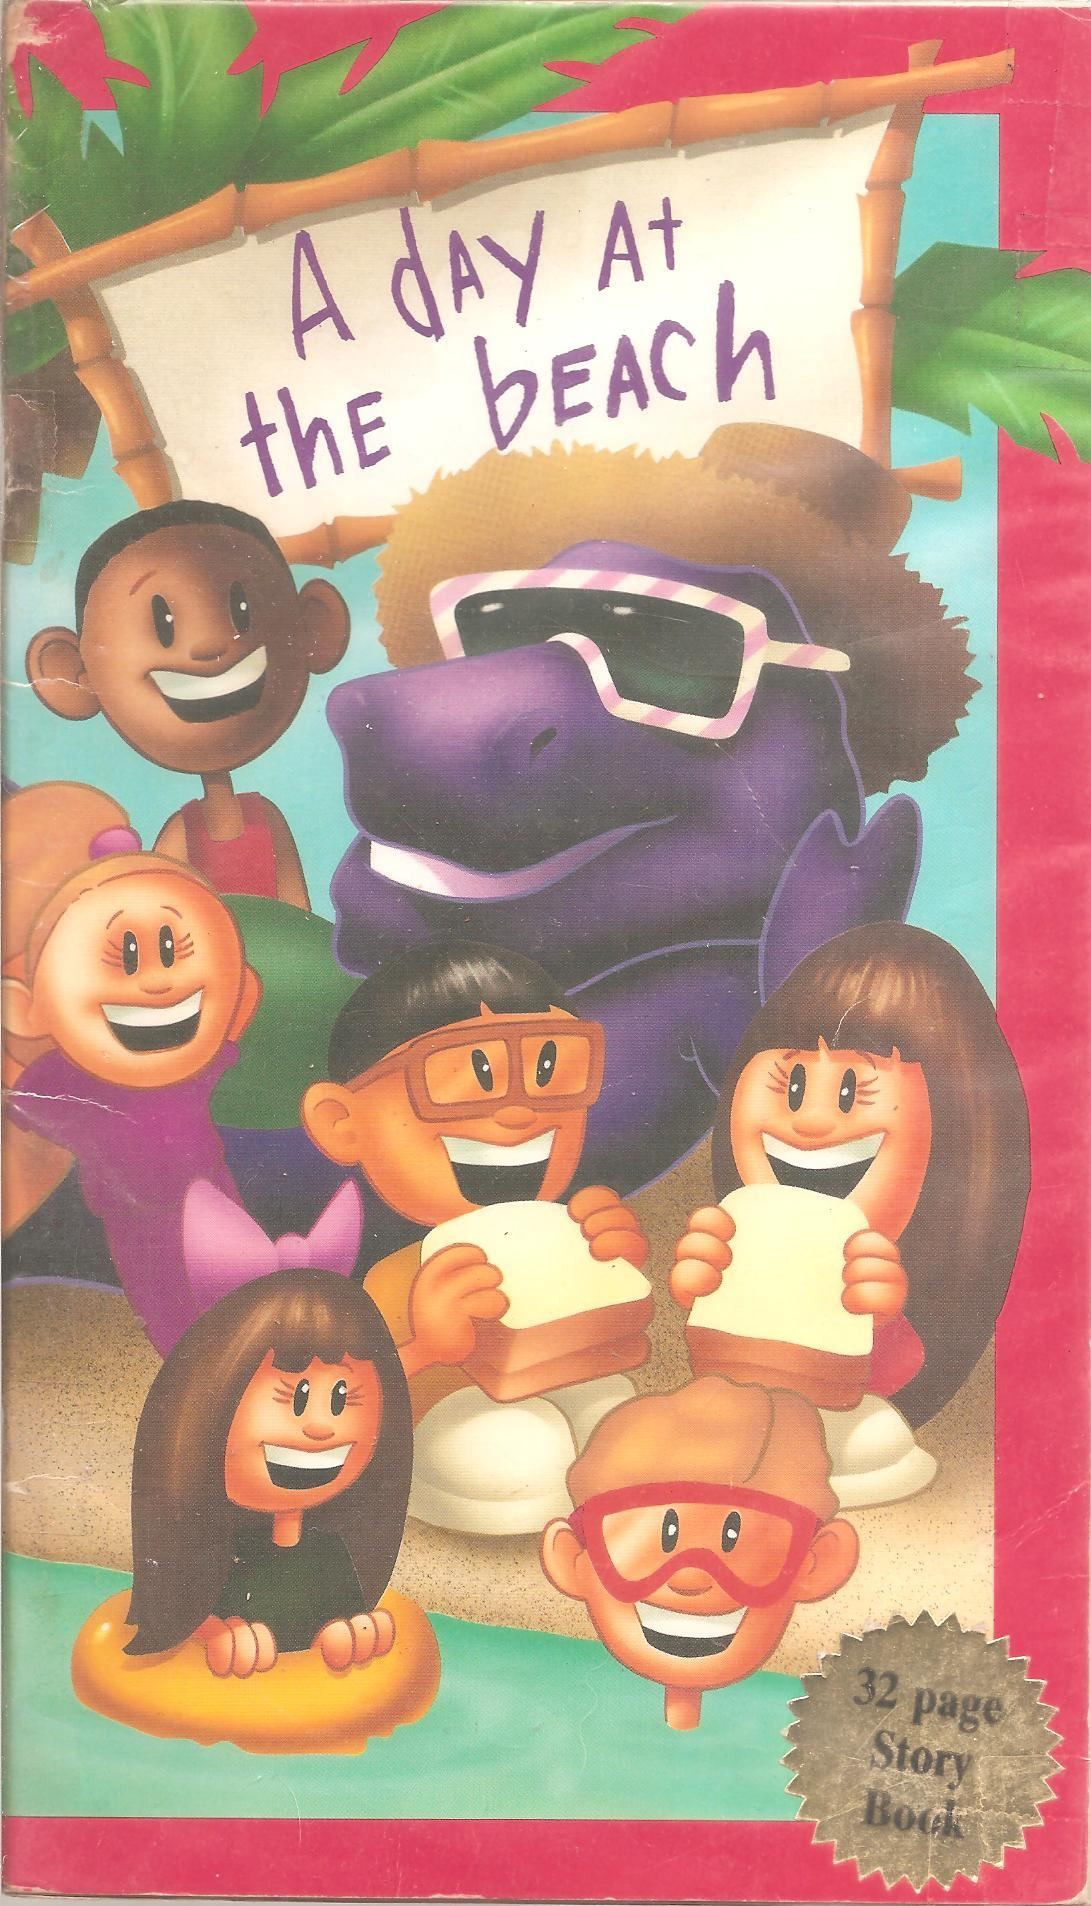 Barney Friends Images Barney And The Backyard Gang A Day At The